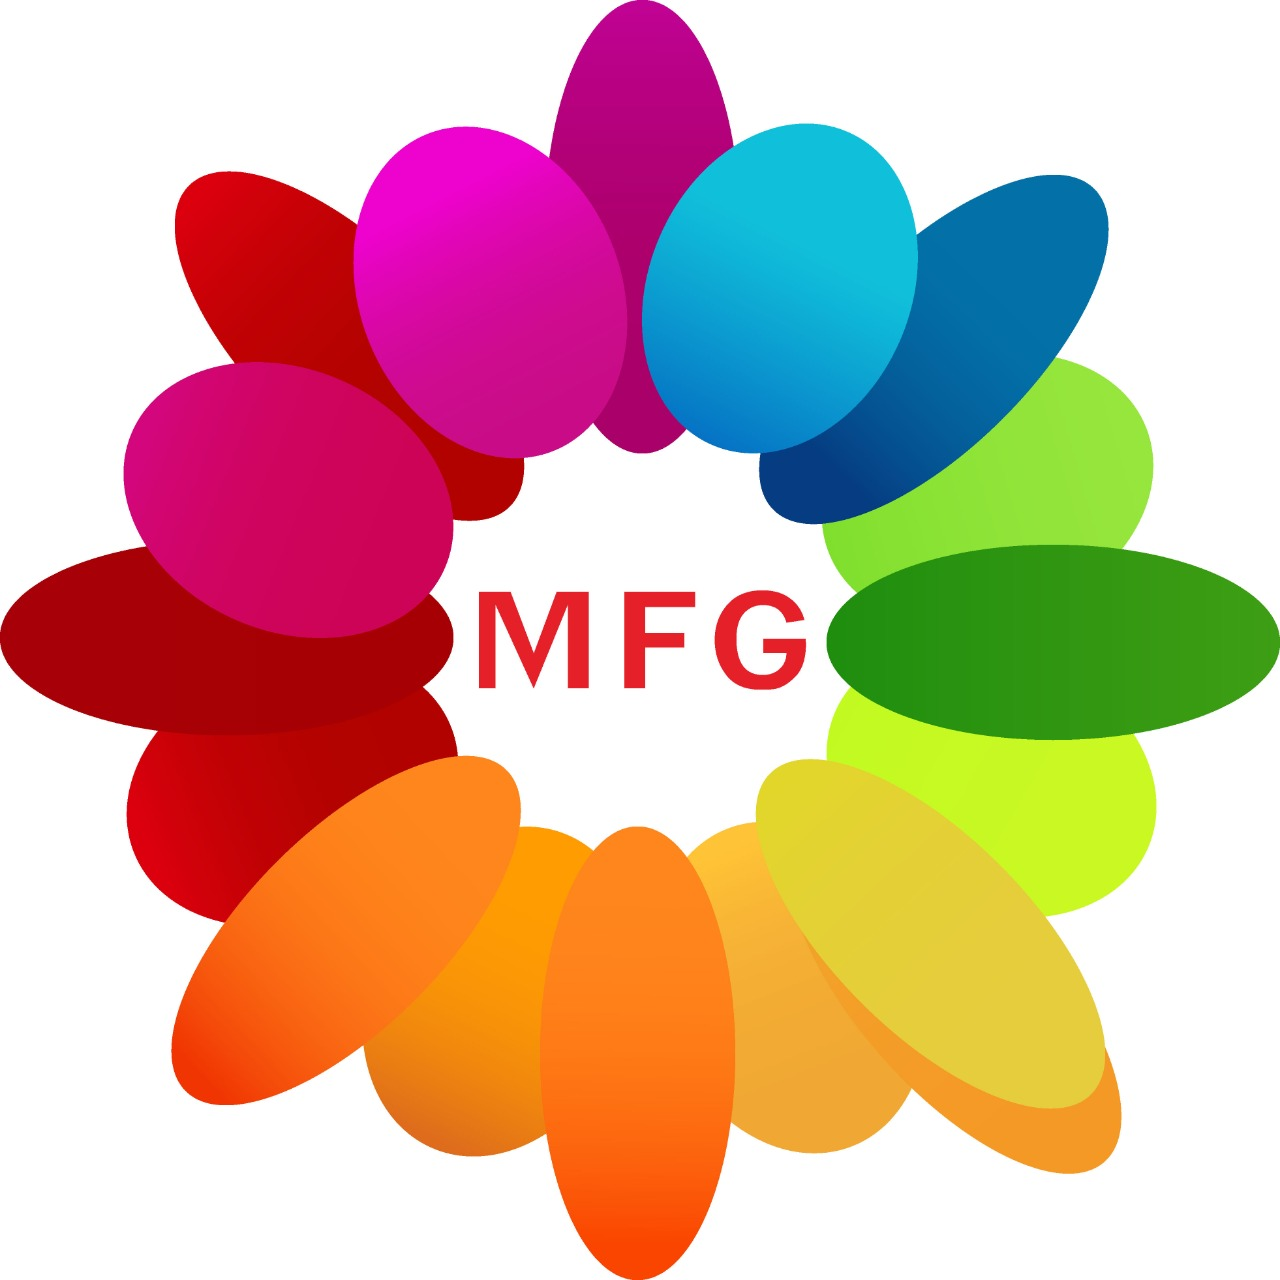 make my day...a 1 feet height cute teddy with bunch of 6 red roses with a greeting card